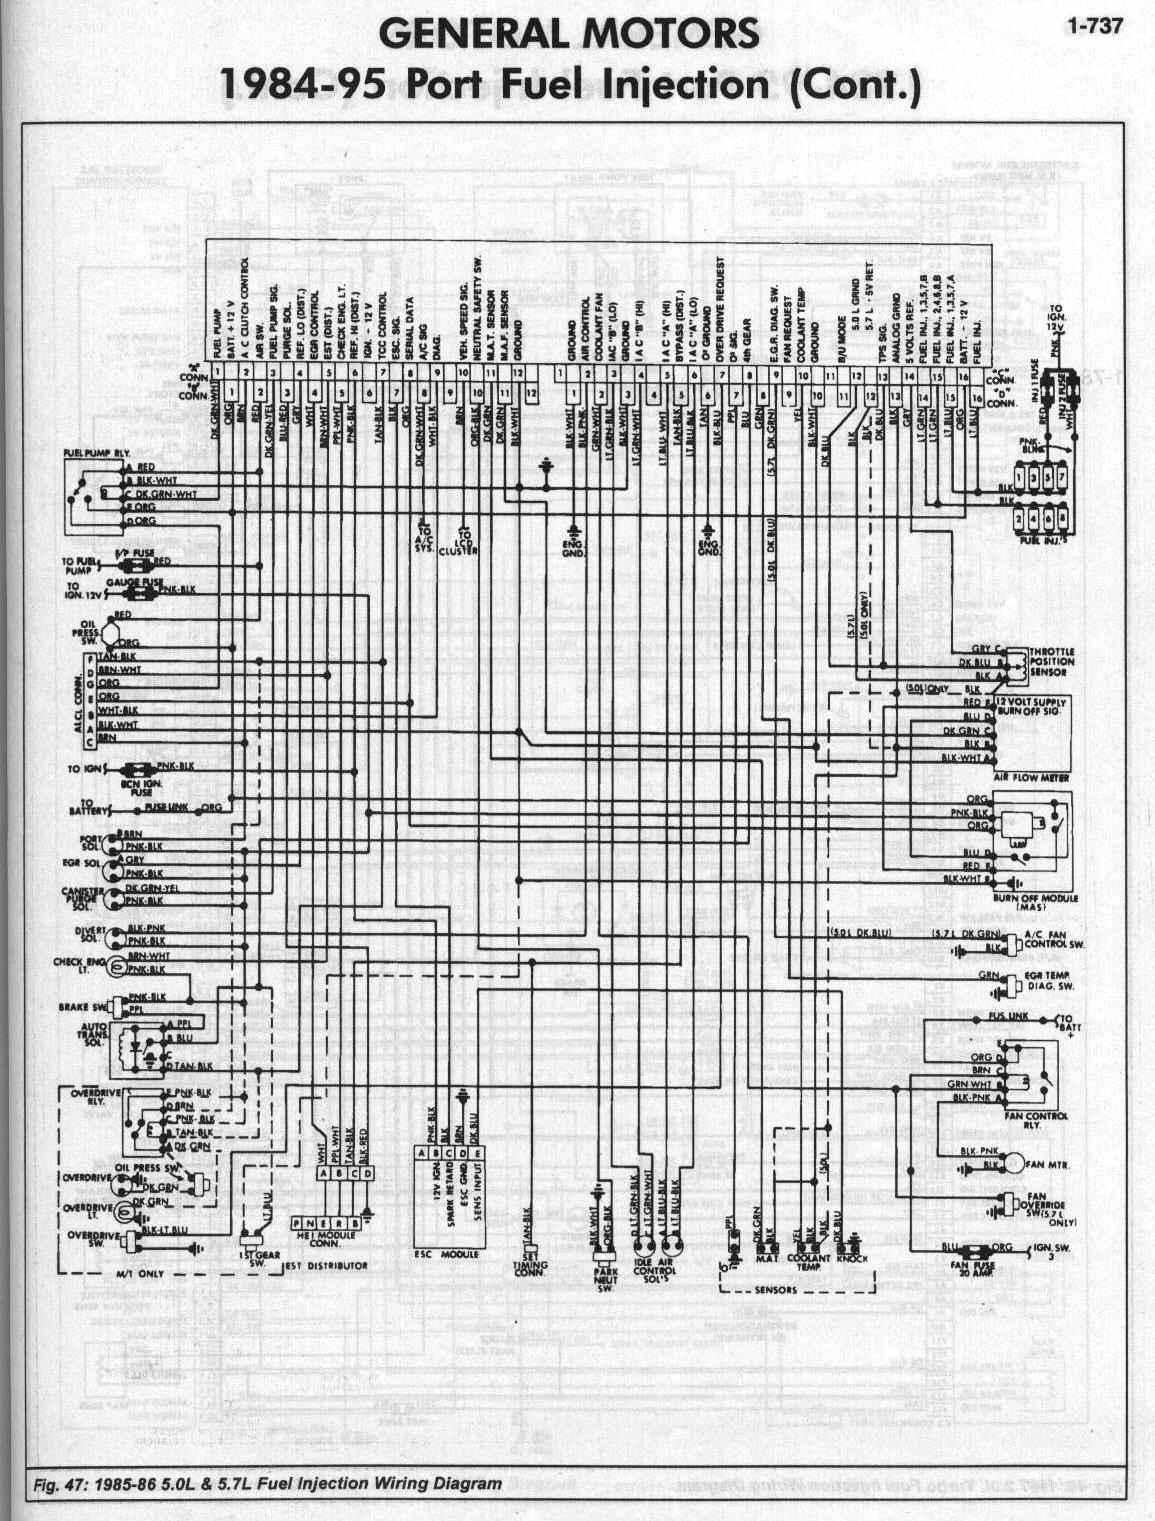 1985 camaro wiring diagram 1985 p30 wiring diagram \u2022 wiring 1991 Corvette L98 Engine 1991 corvette wiring diagram schematic